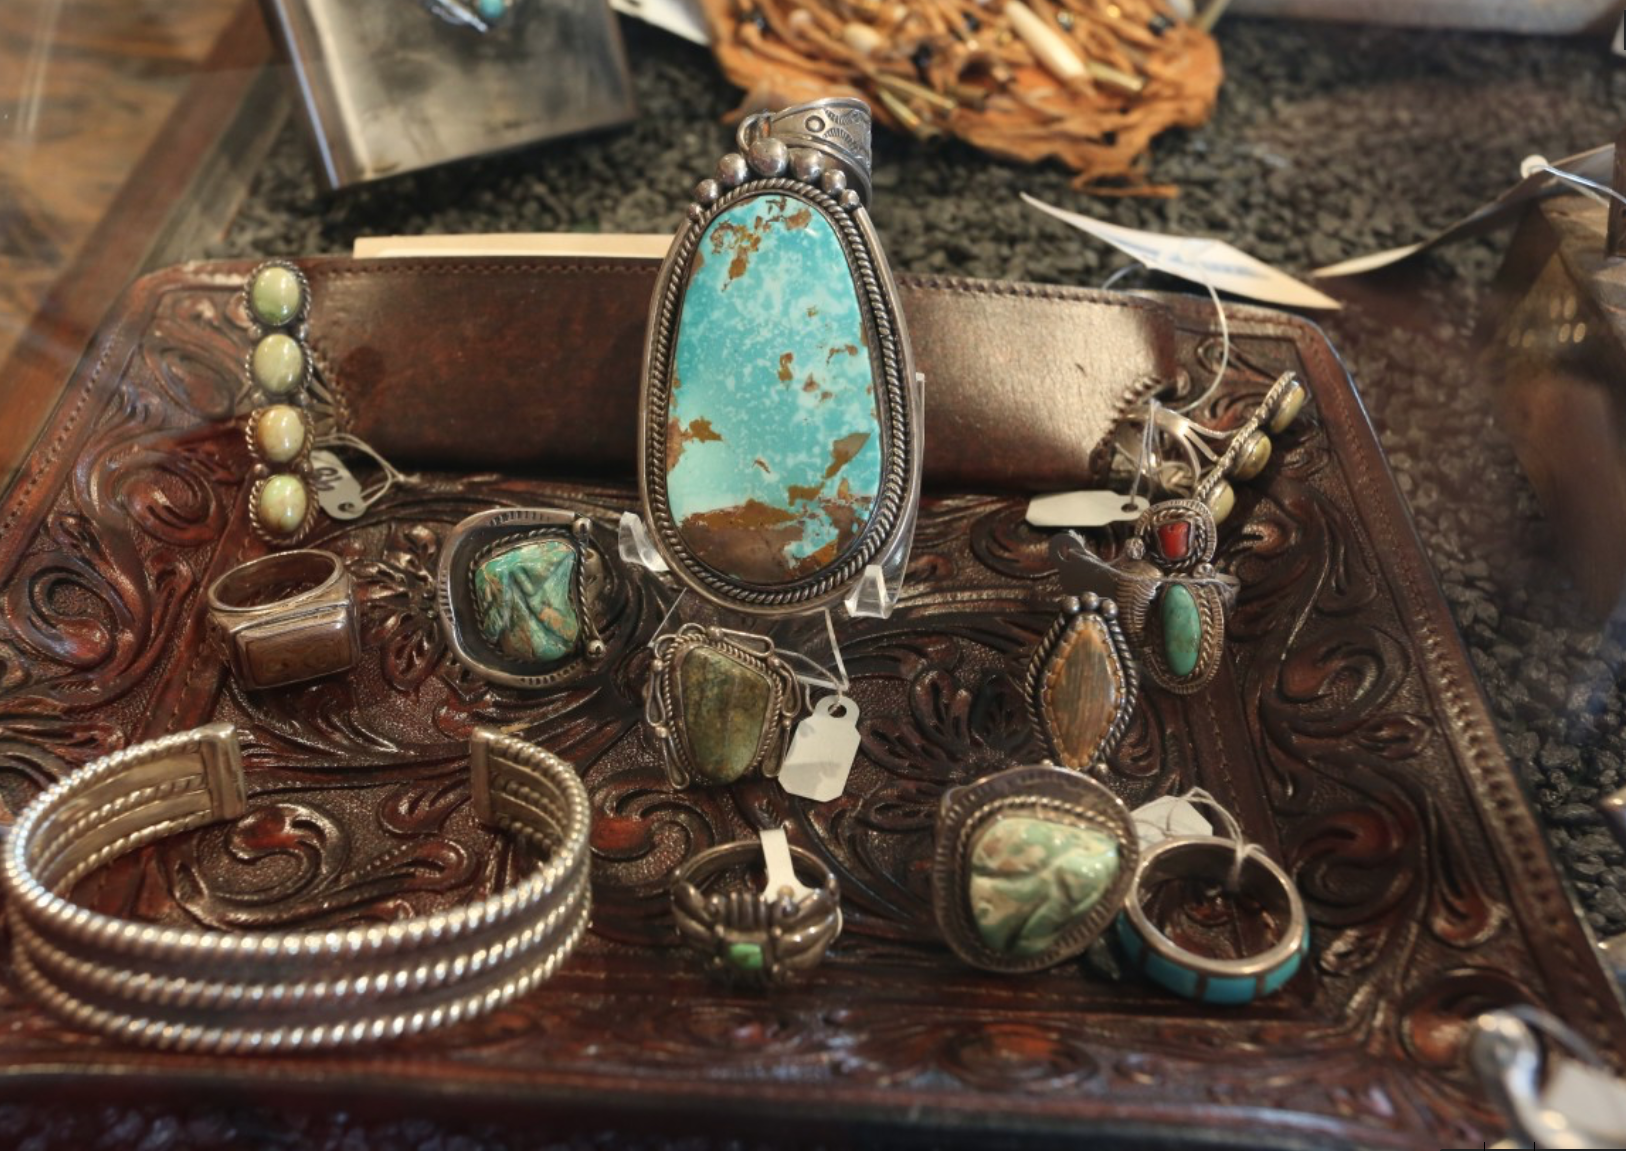 Turquoise and silver jewelry at Boot Star